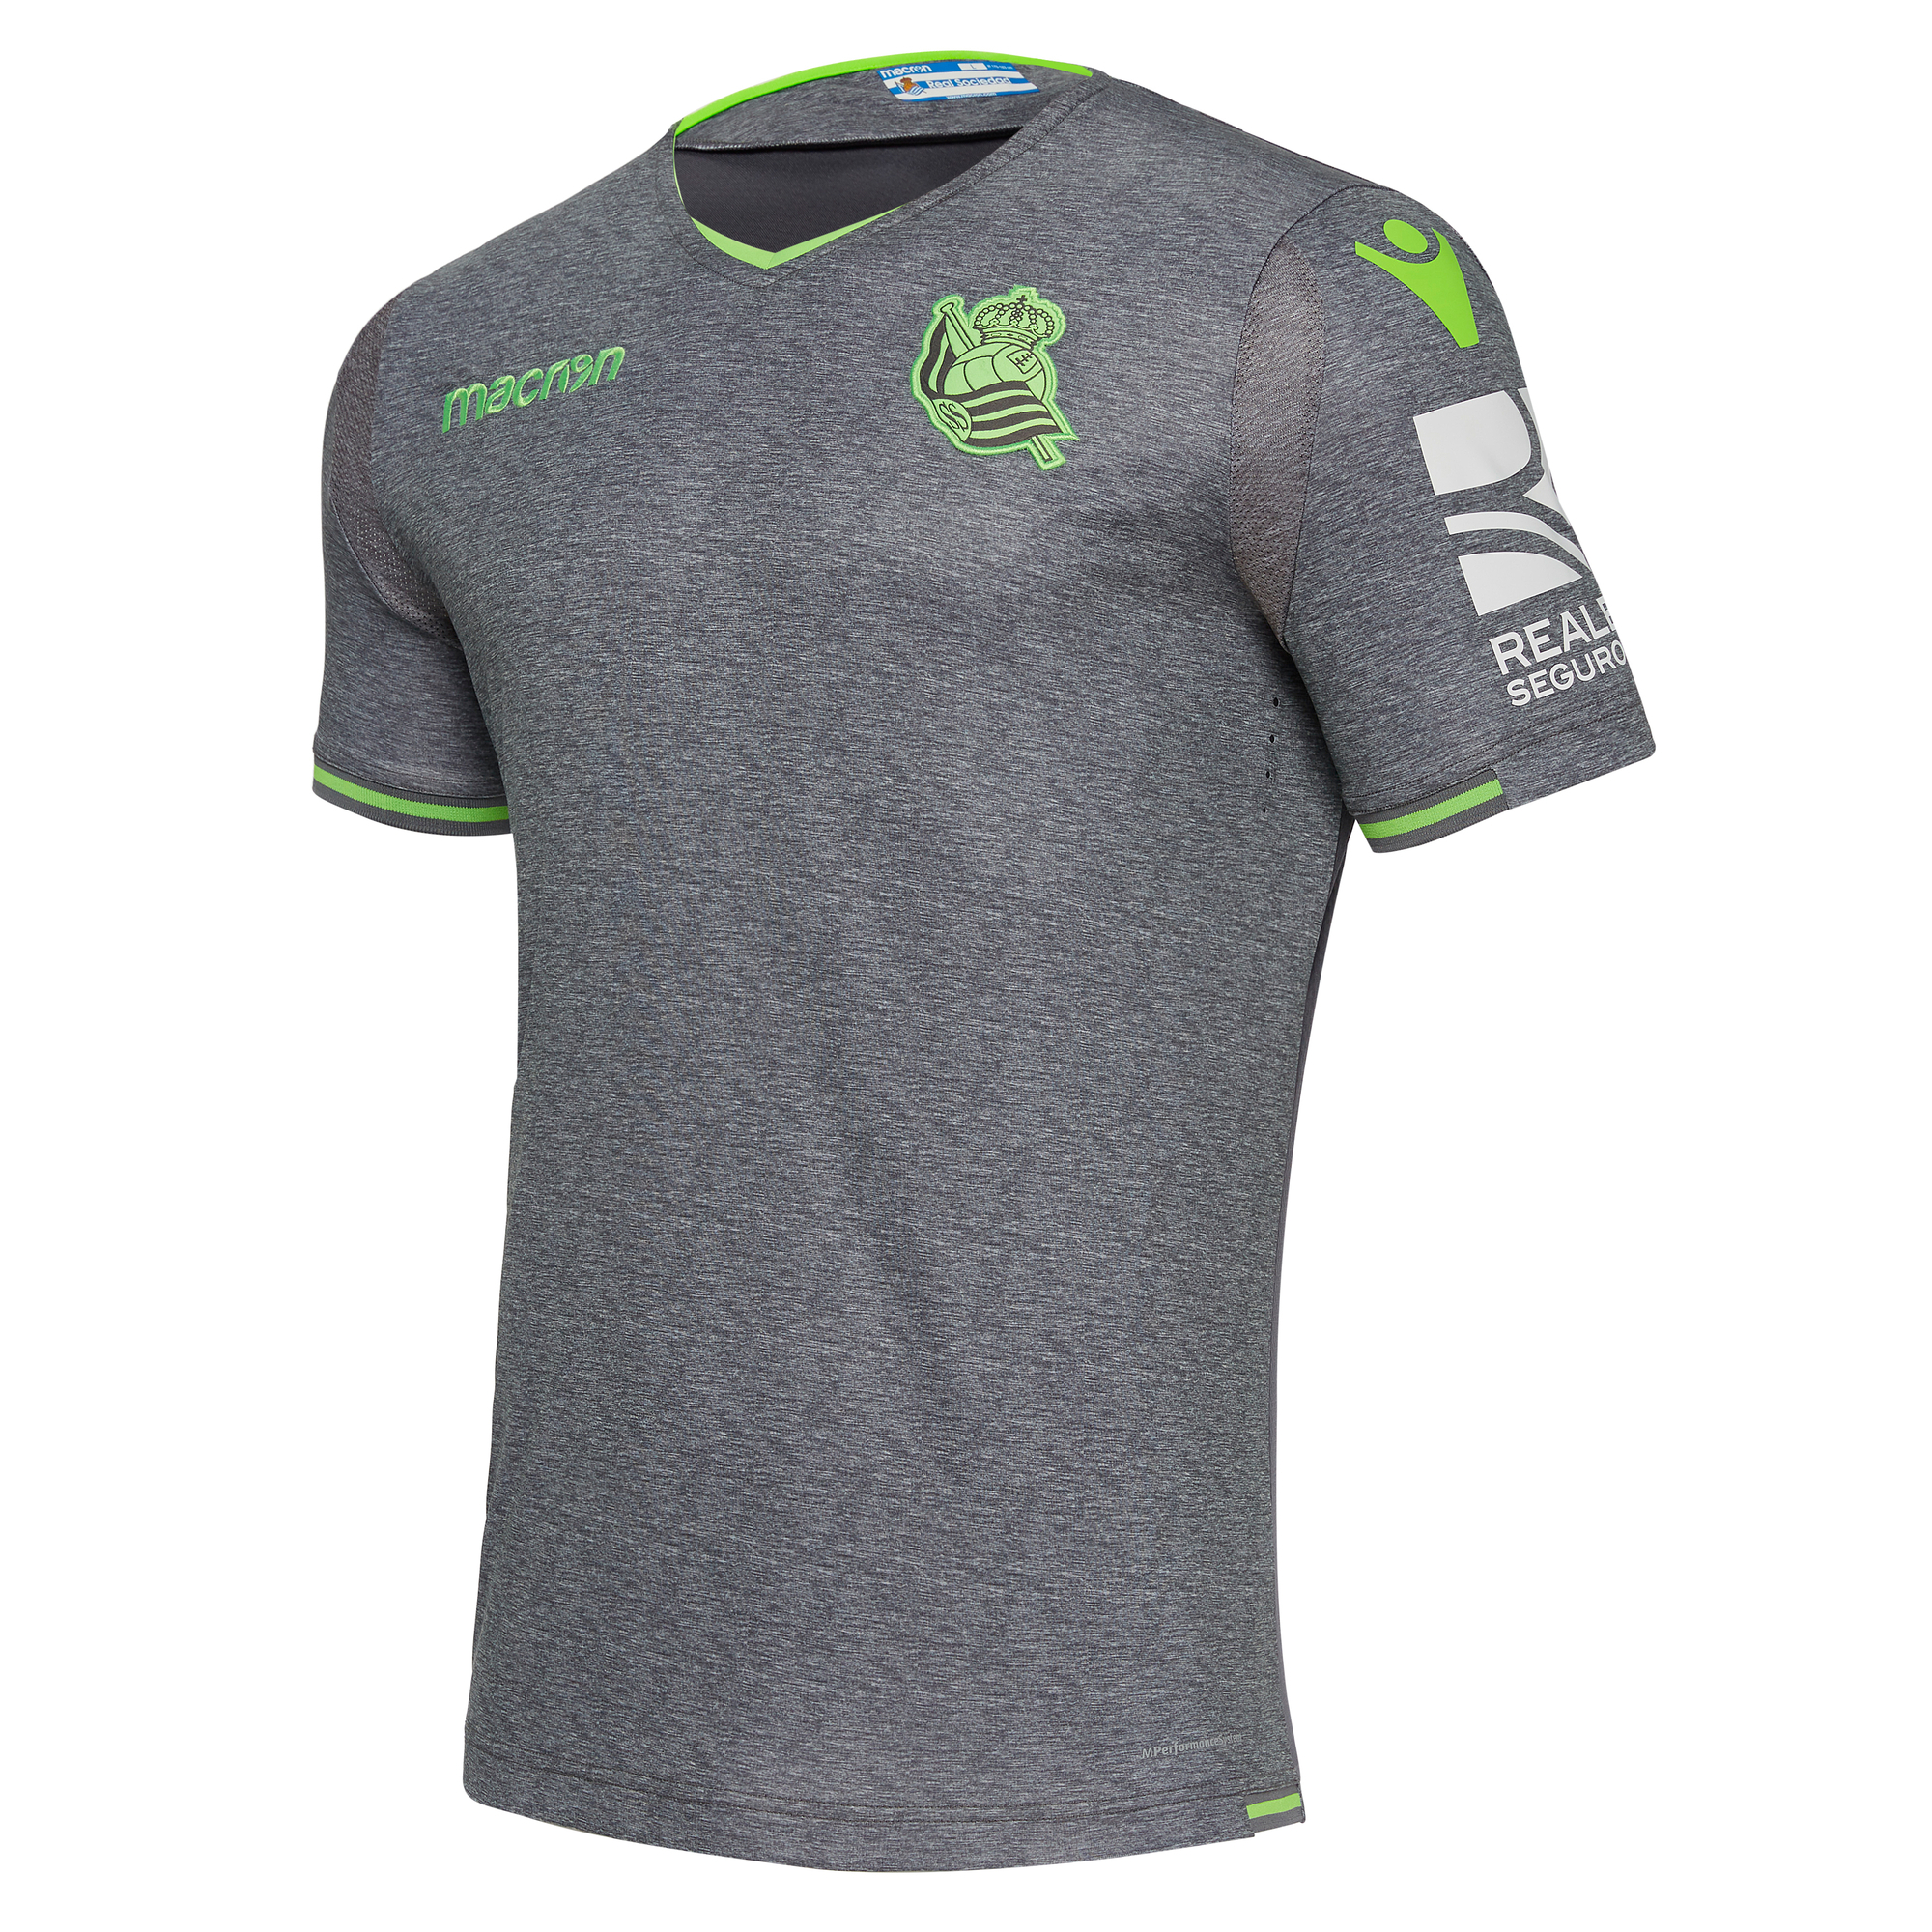 cheap for discount 798b8 0f7f5 Real Sociedad Away Jersey 2018-19